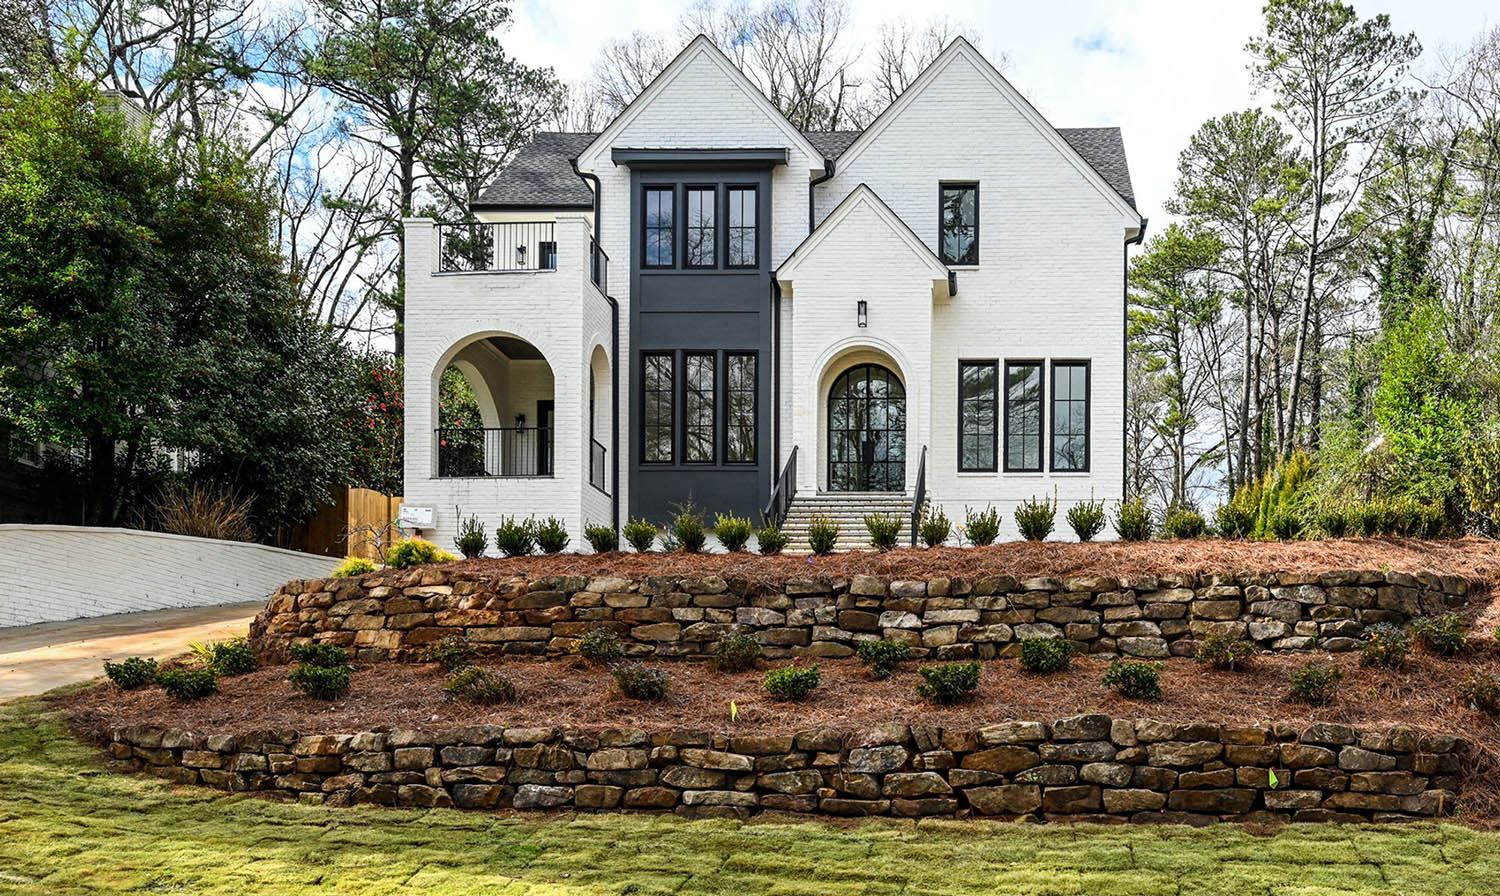 painted white brick house with black paneling and black railings with a black arched top front door